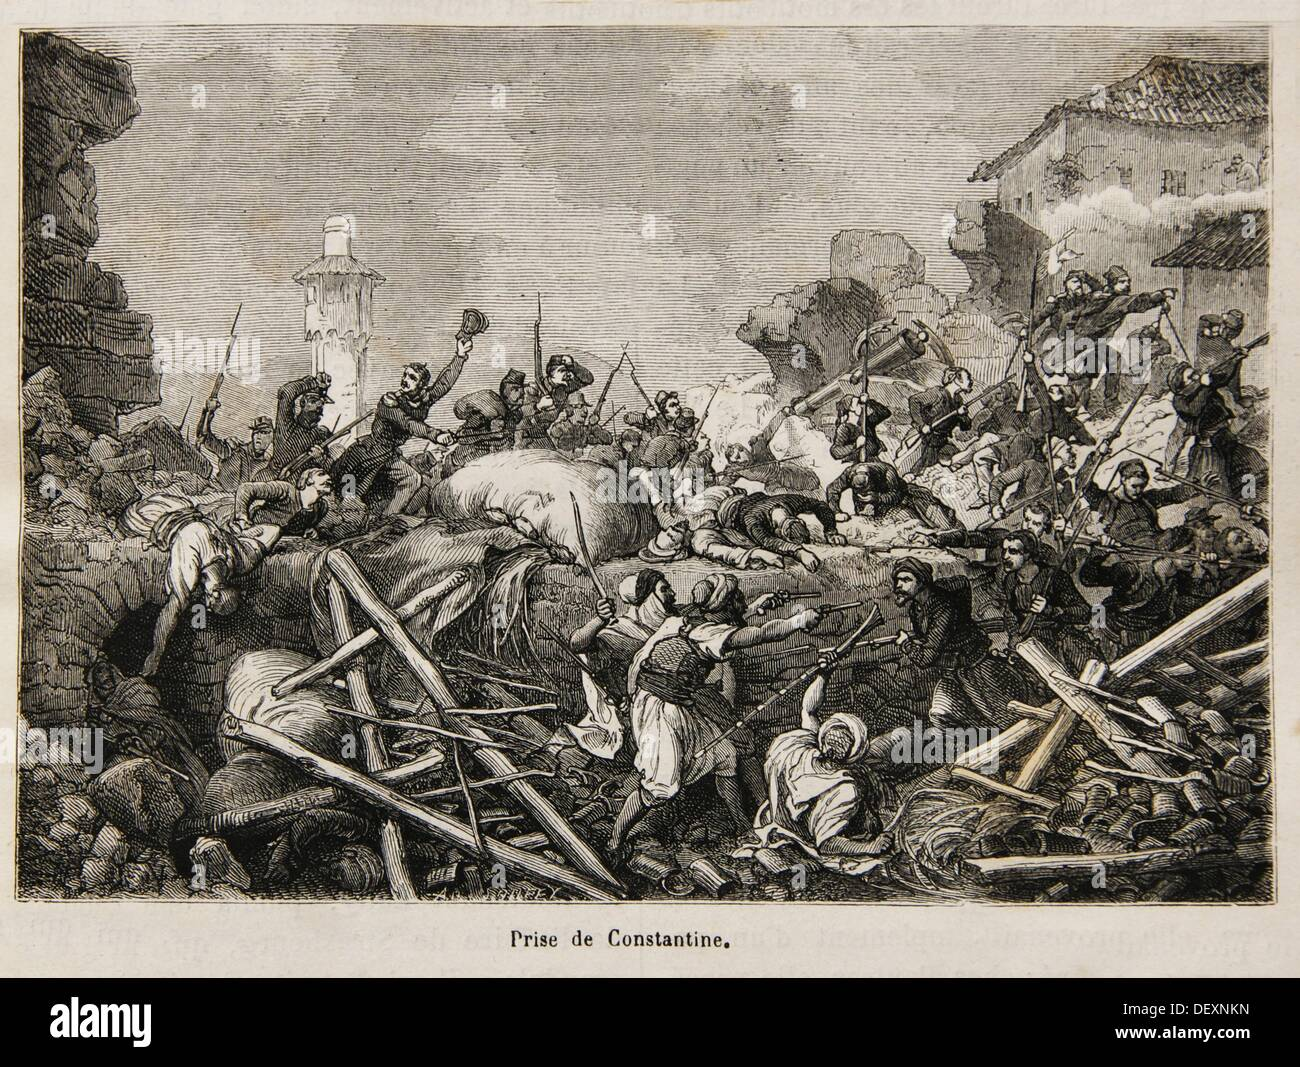 ´Prise de Constantine´, French troops during the colonisation of Algiers (19th century) - Stock Image